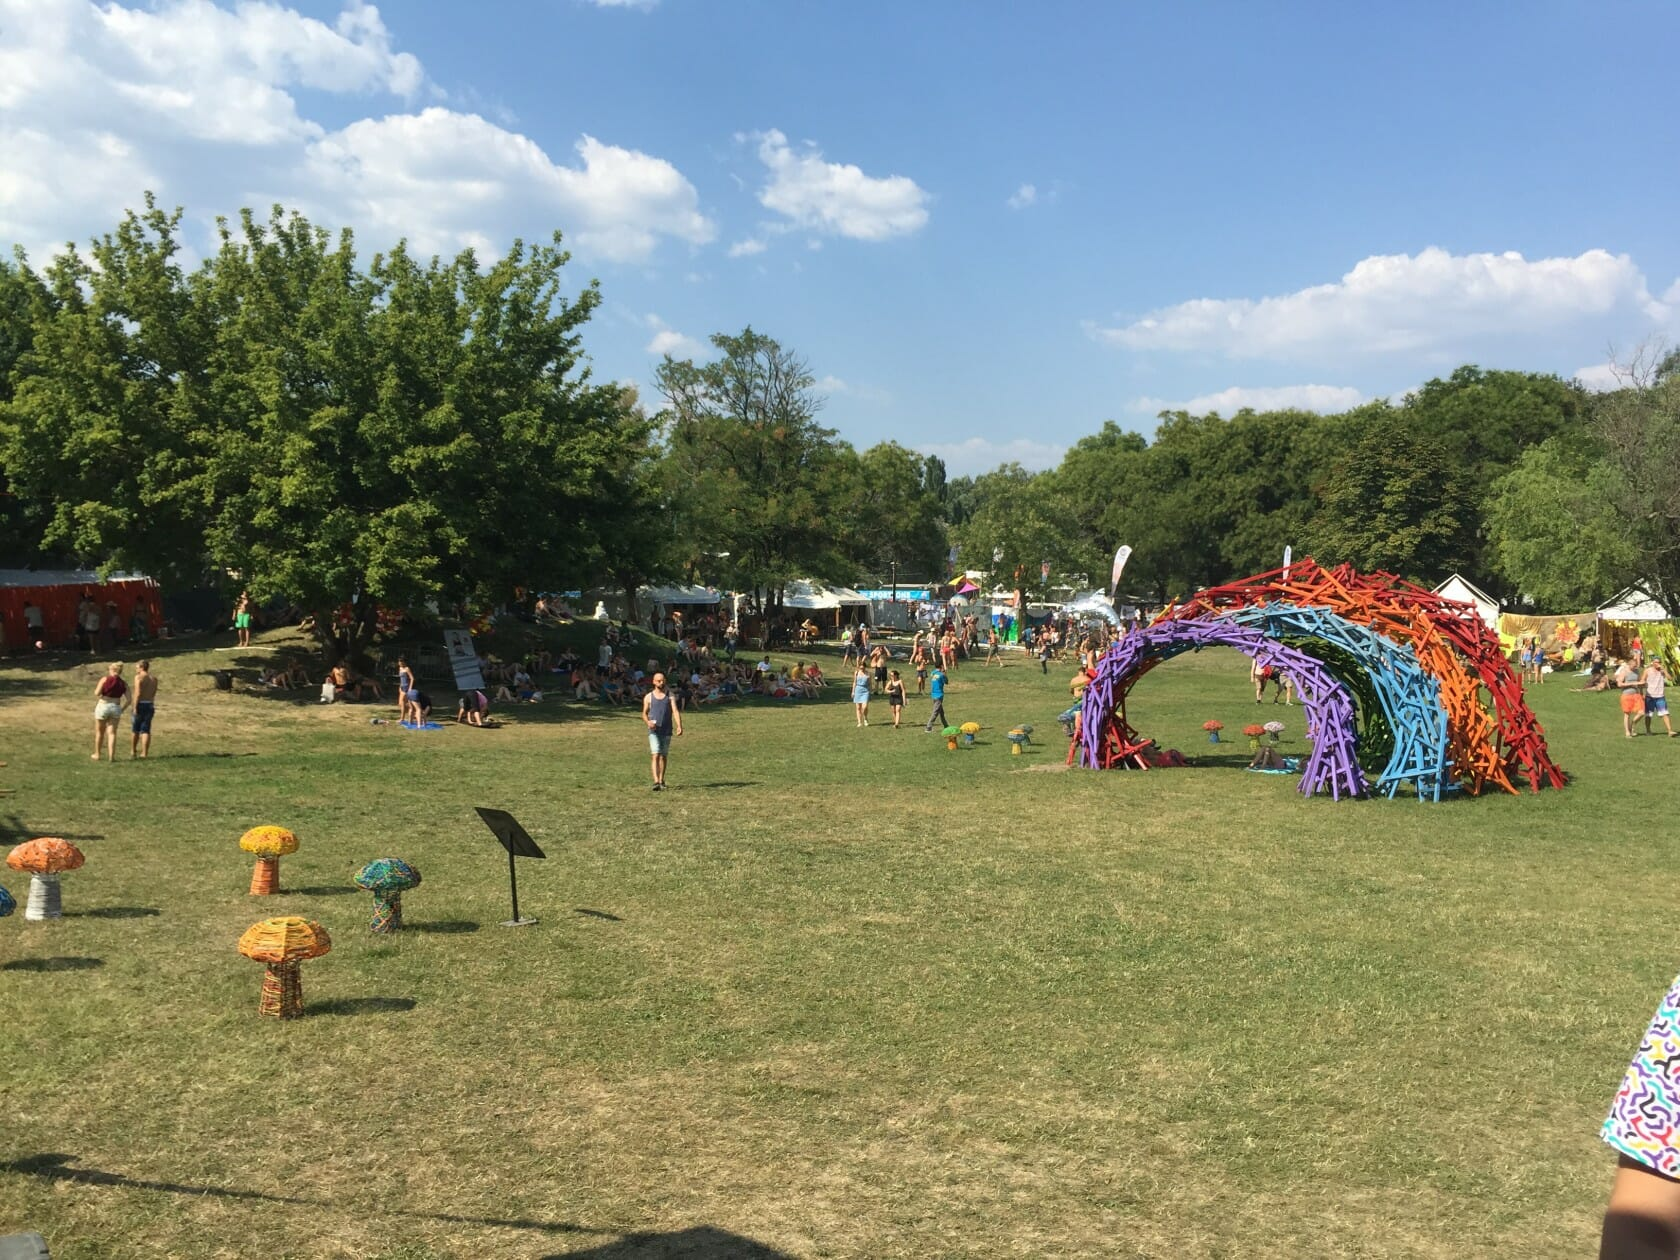 sziget review + festival guide for sziget festival in budapest august art zone